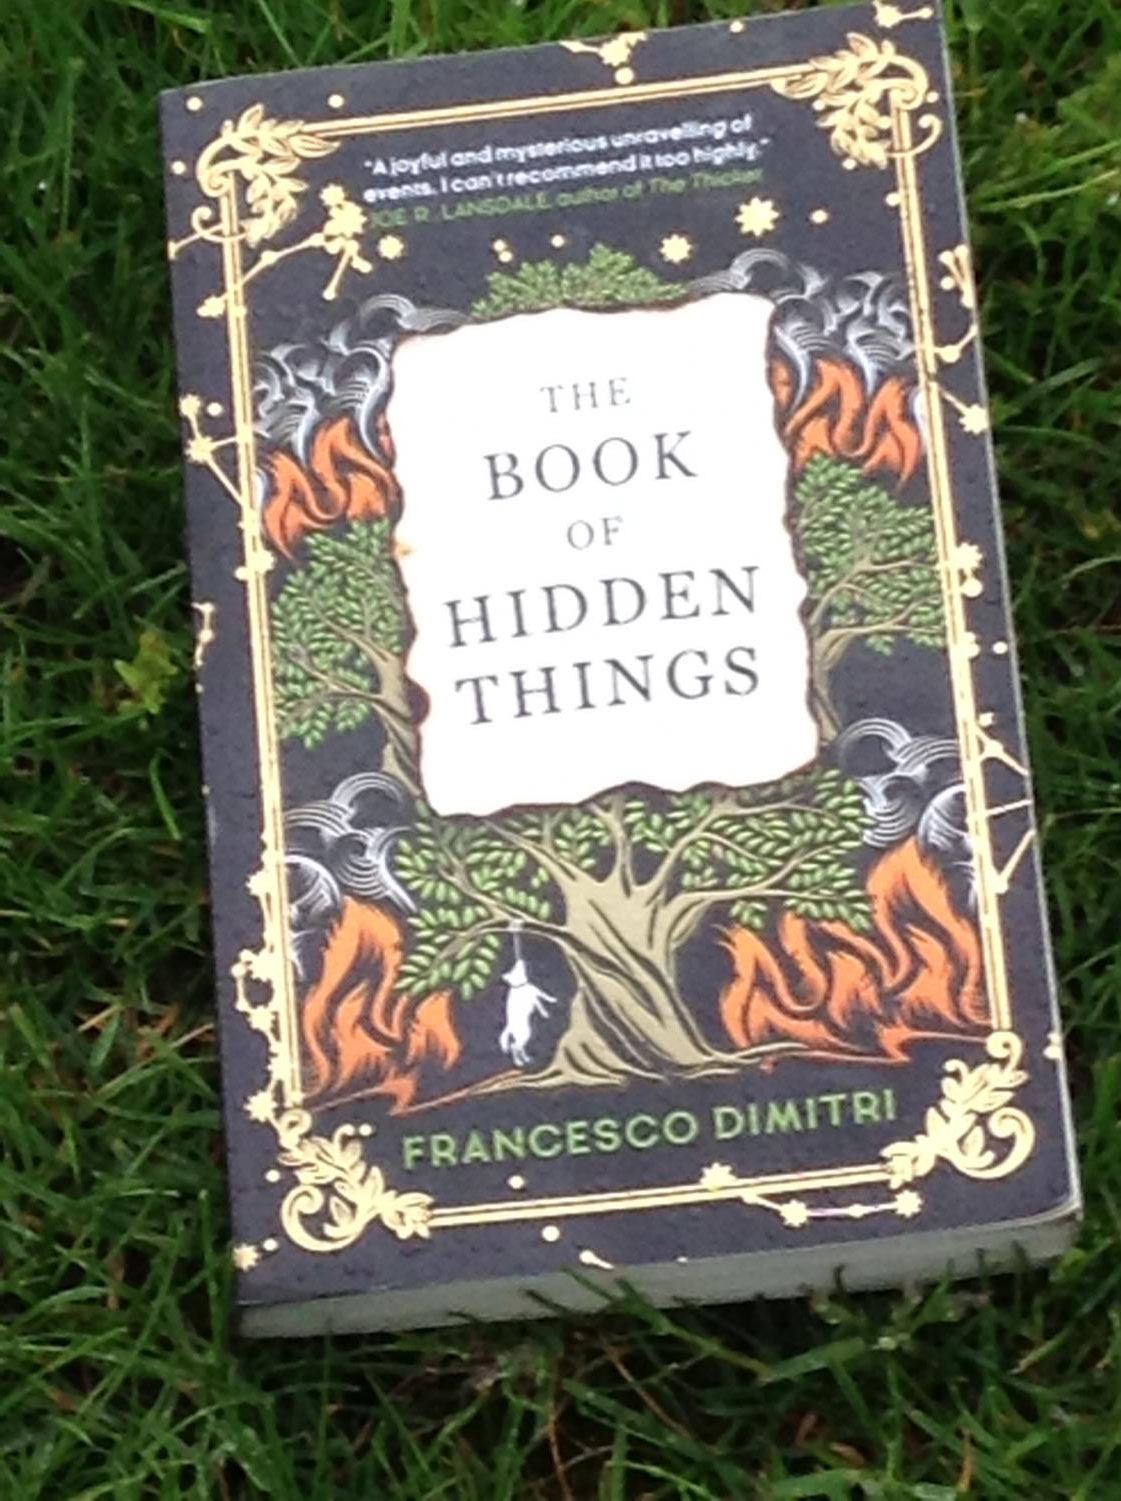 The Book of Hidden Things is a thriller by Francesco Dimitri. It follows the story of four friends who have secrets.